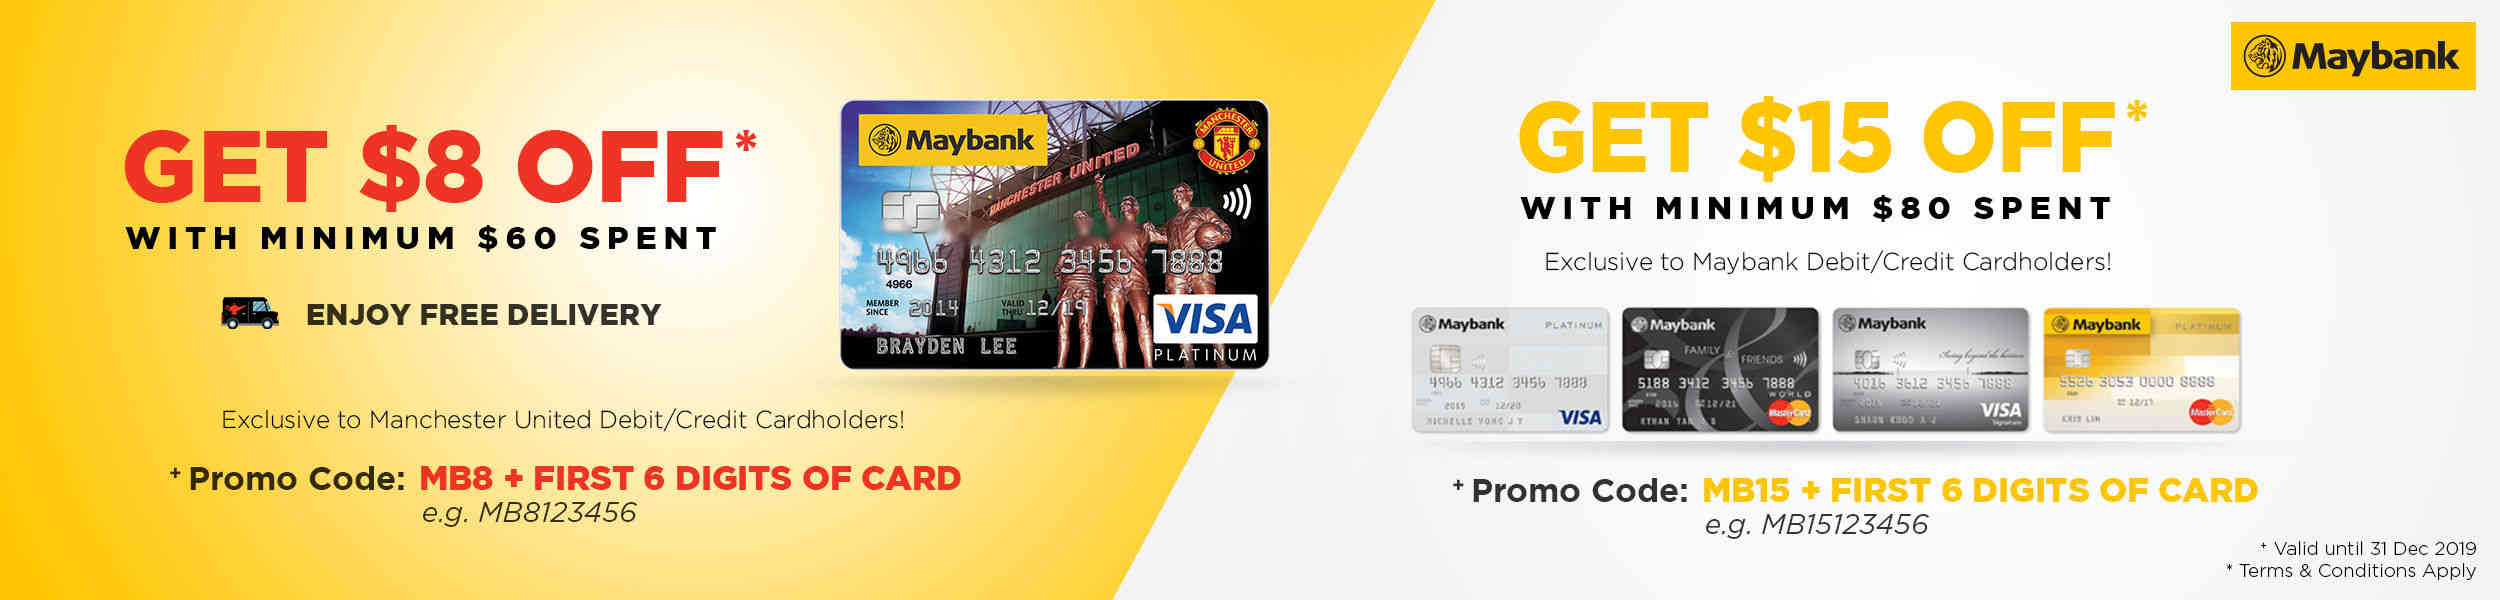 Maybank - Whole Year Promo